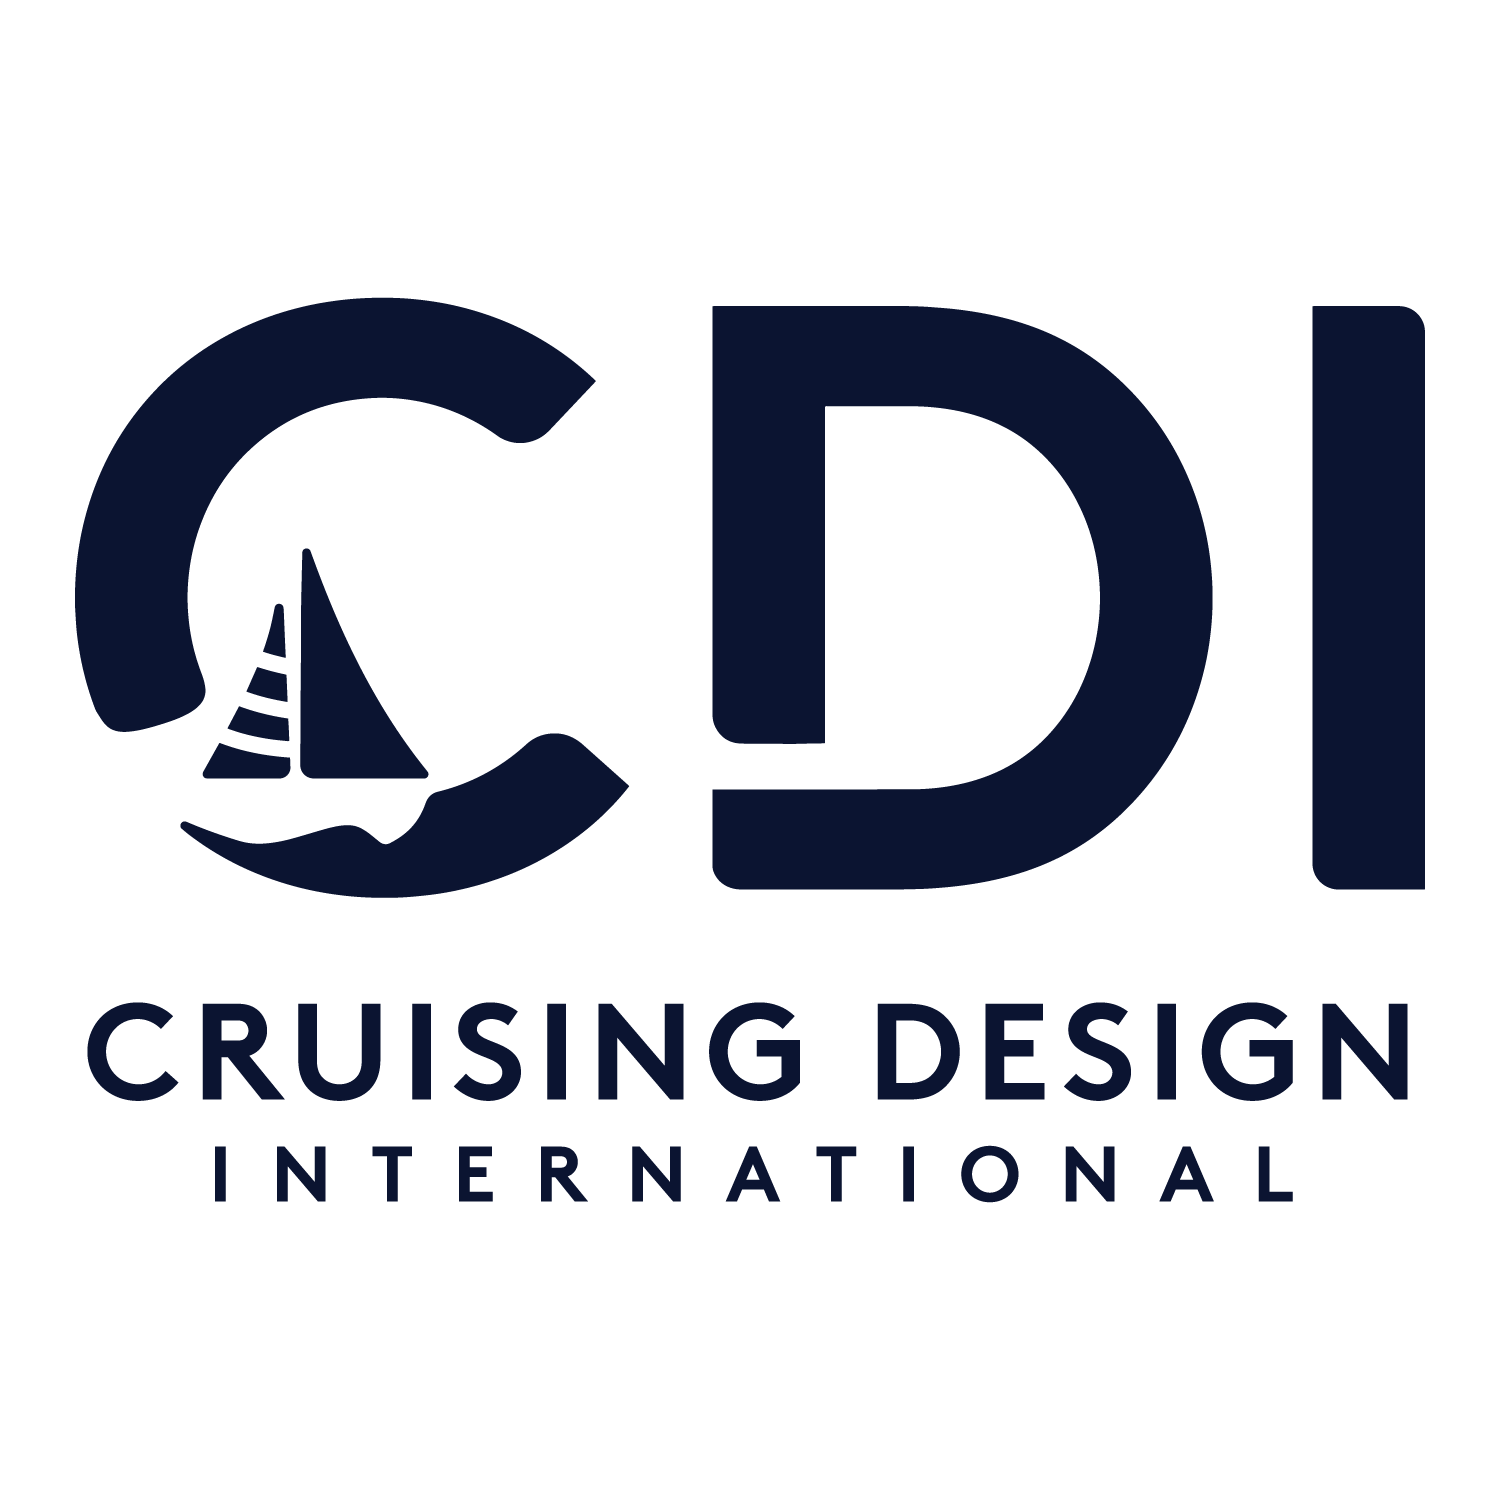 Cruising Design International